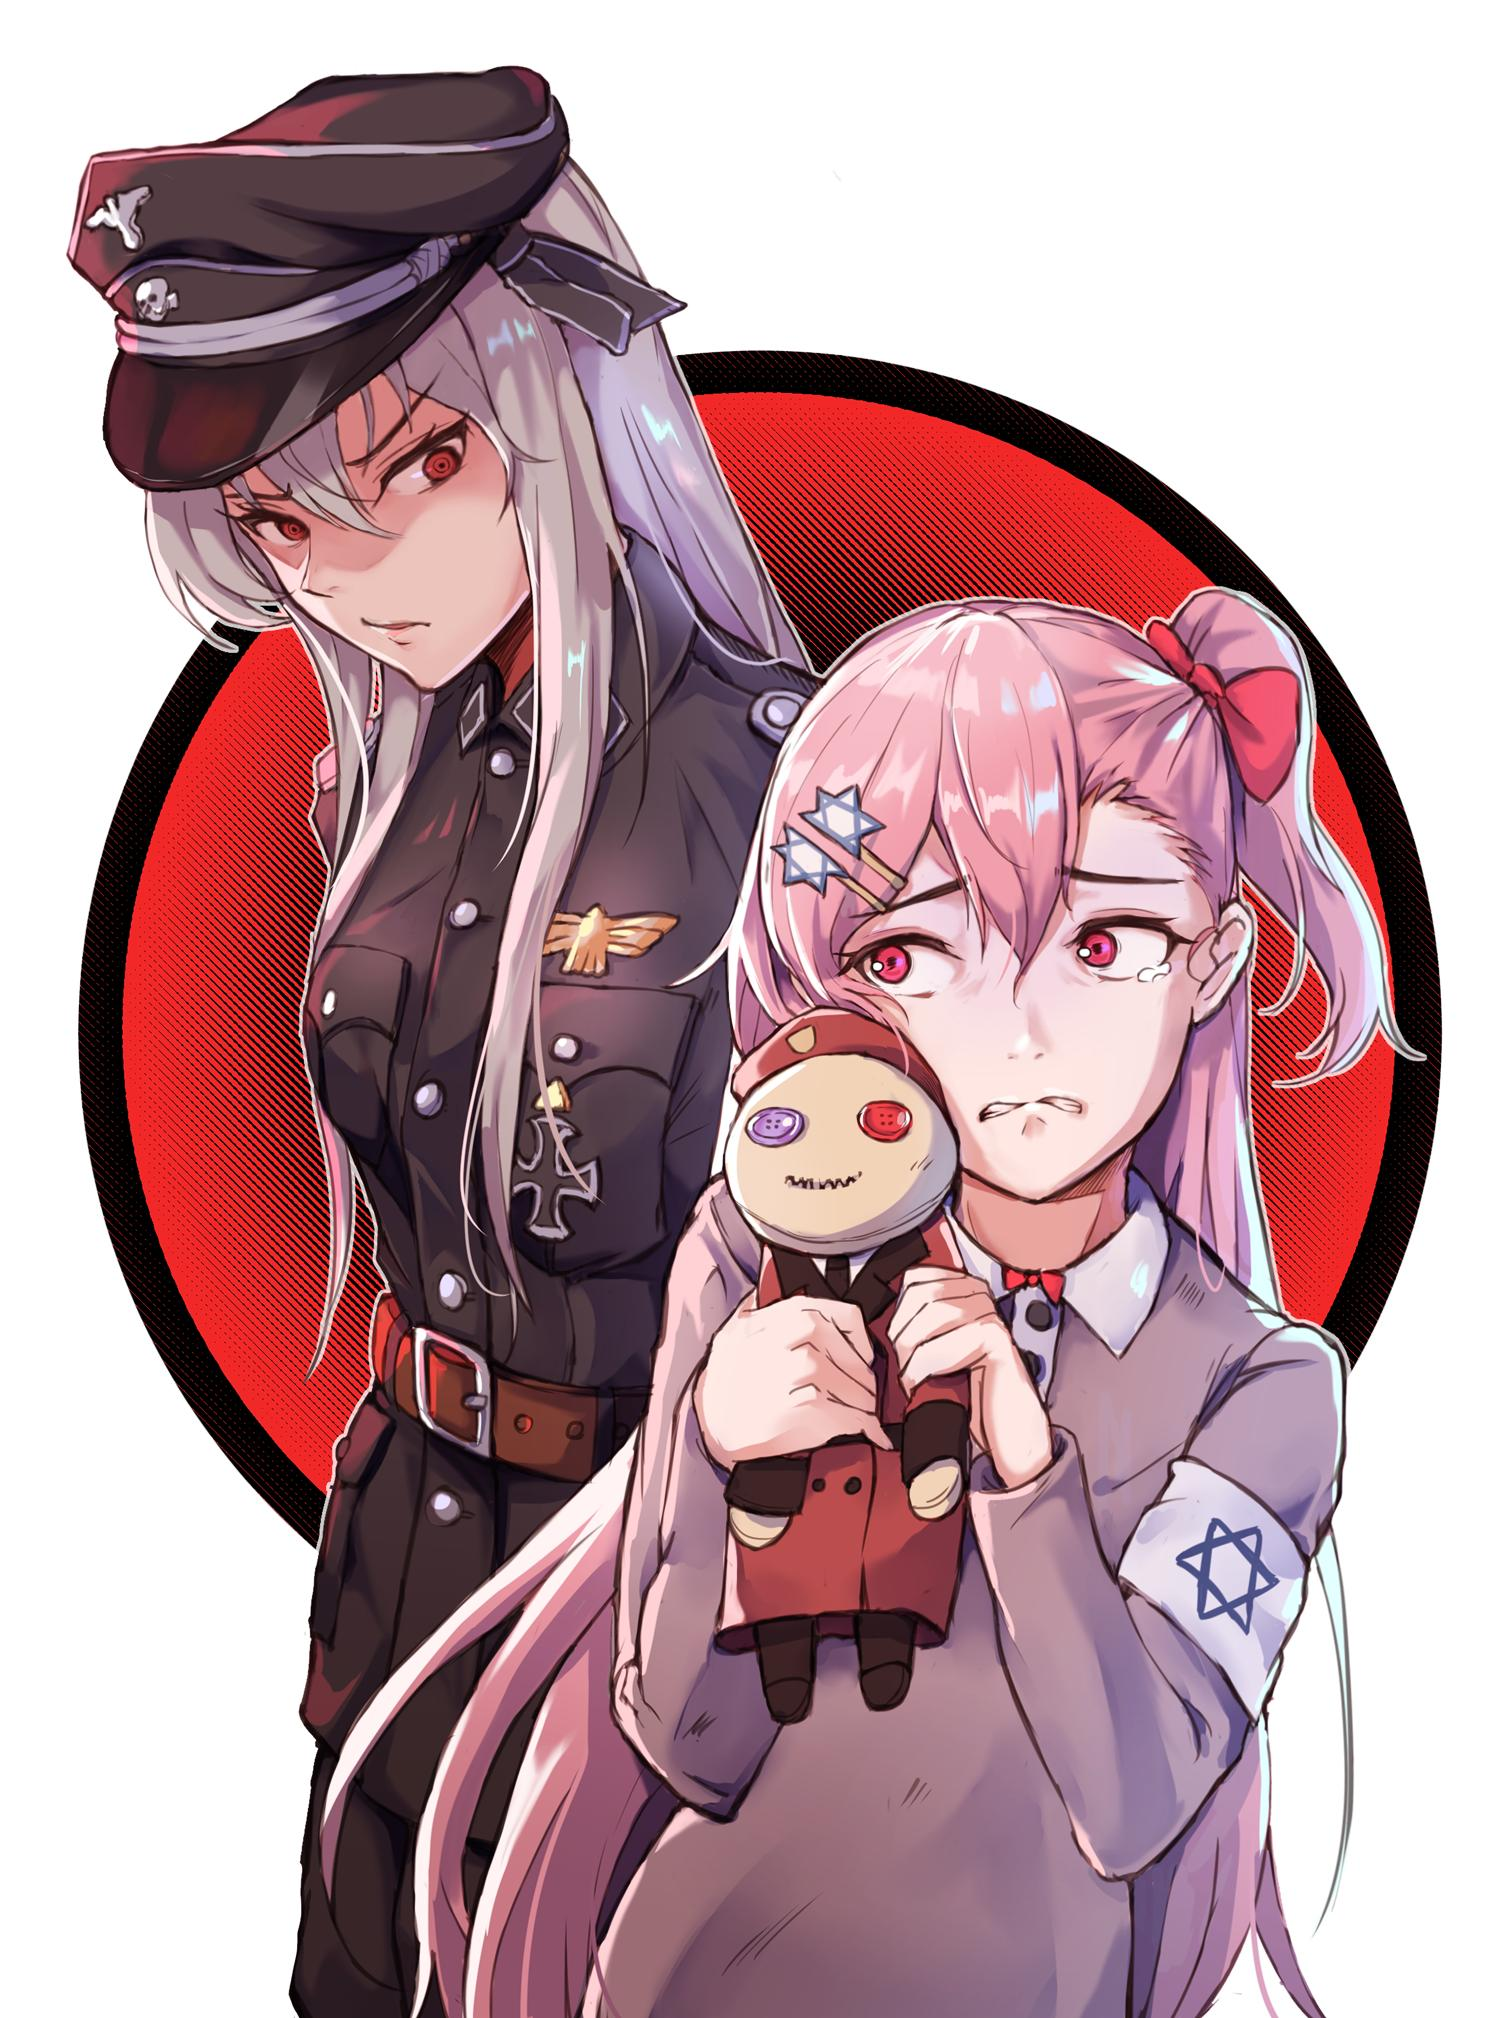 2girls armband bird commander_(girls_frontline) crying crying_with_eyes_open doll eagle girls_frontline glaring hair_ribbon hat hexagram highres iron_cross kar98k_(girls_frontline) military military_uniform multiple_girls nazi negev_(girls_frontline) niac peaked_cap pink_hair red_eyes ribbon silver_hair star_of_david tears uniform